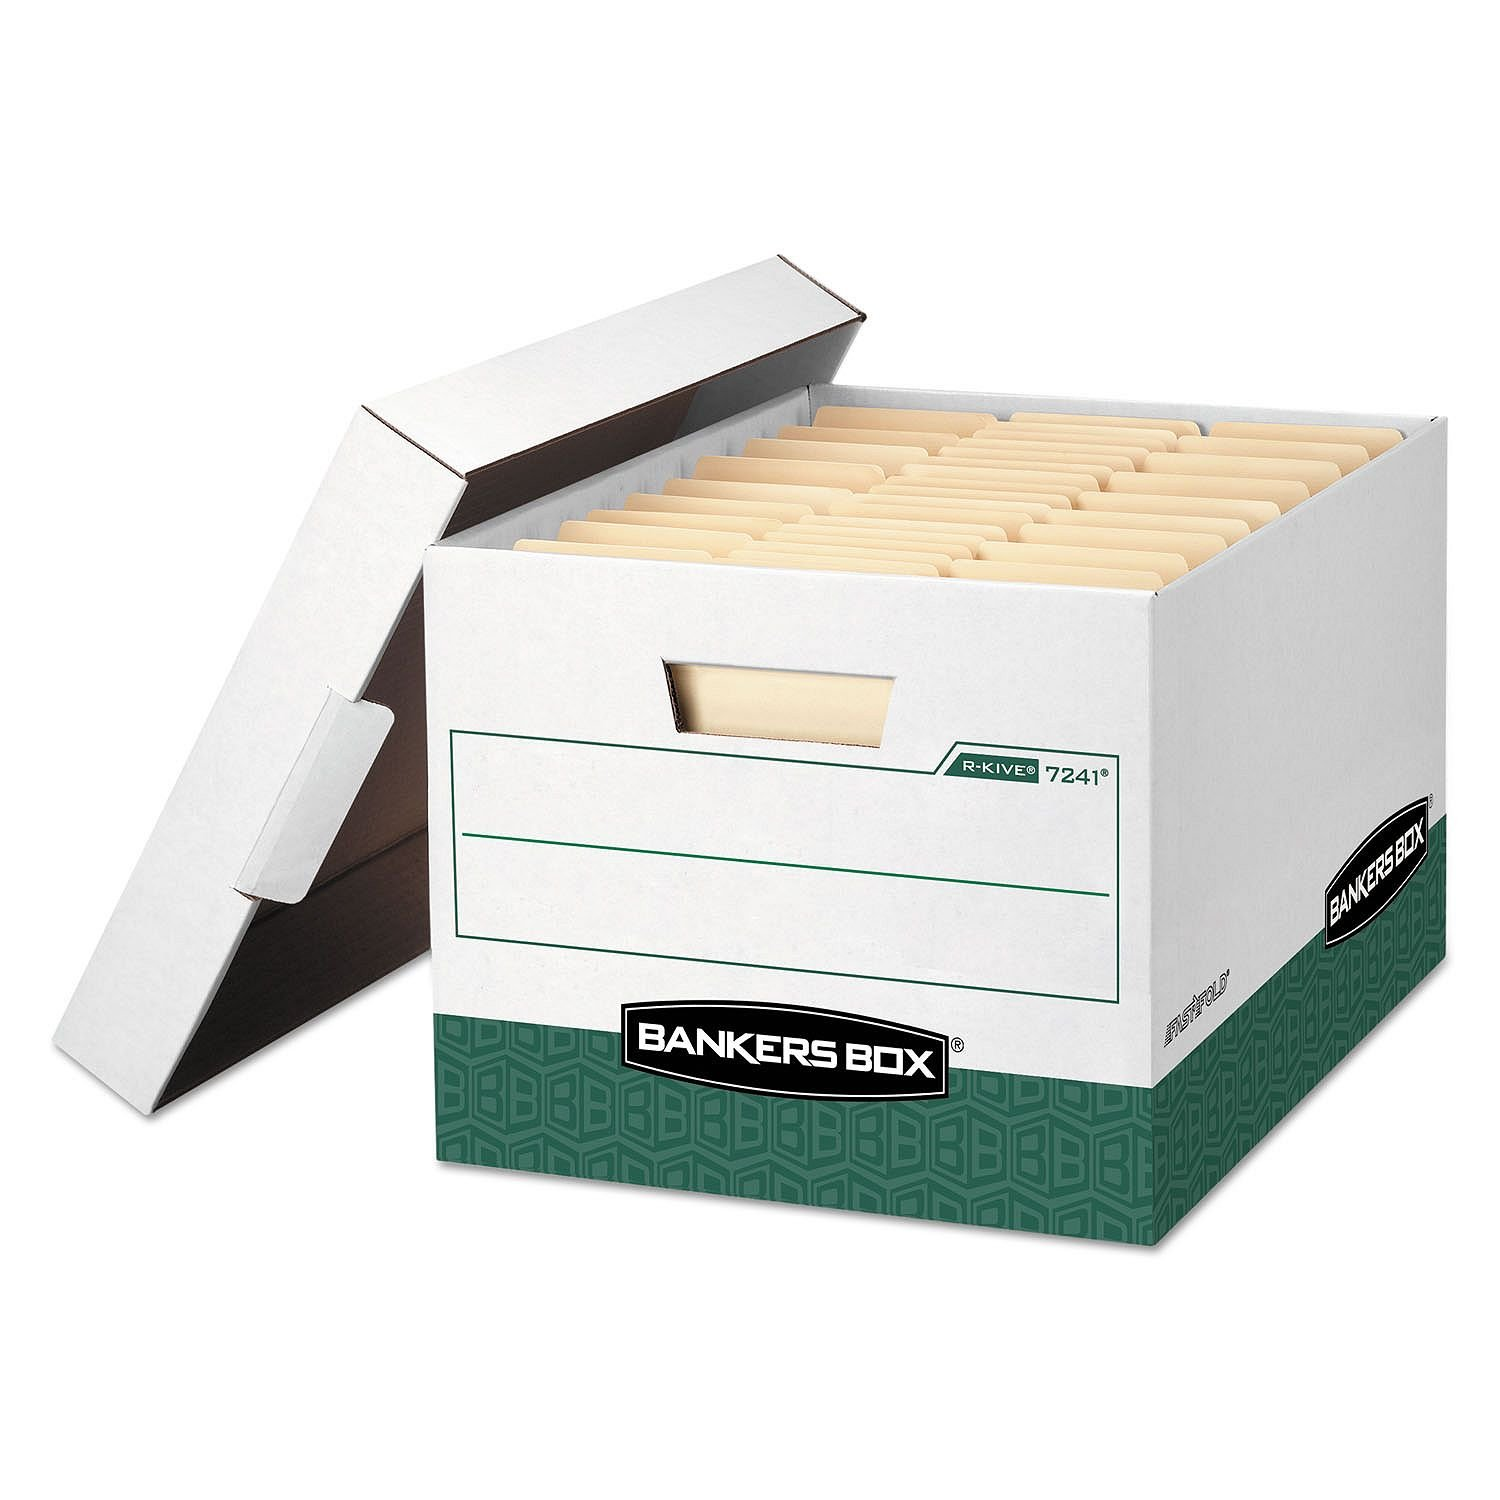 Bankers Box R-Kive Max Storage Box, Legal/Letter - (24 Pack, Green)